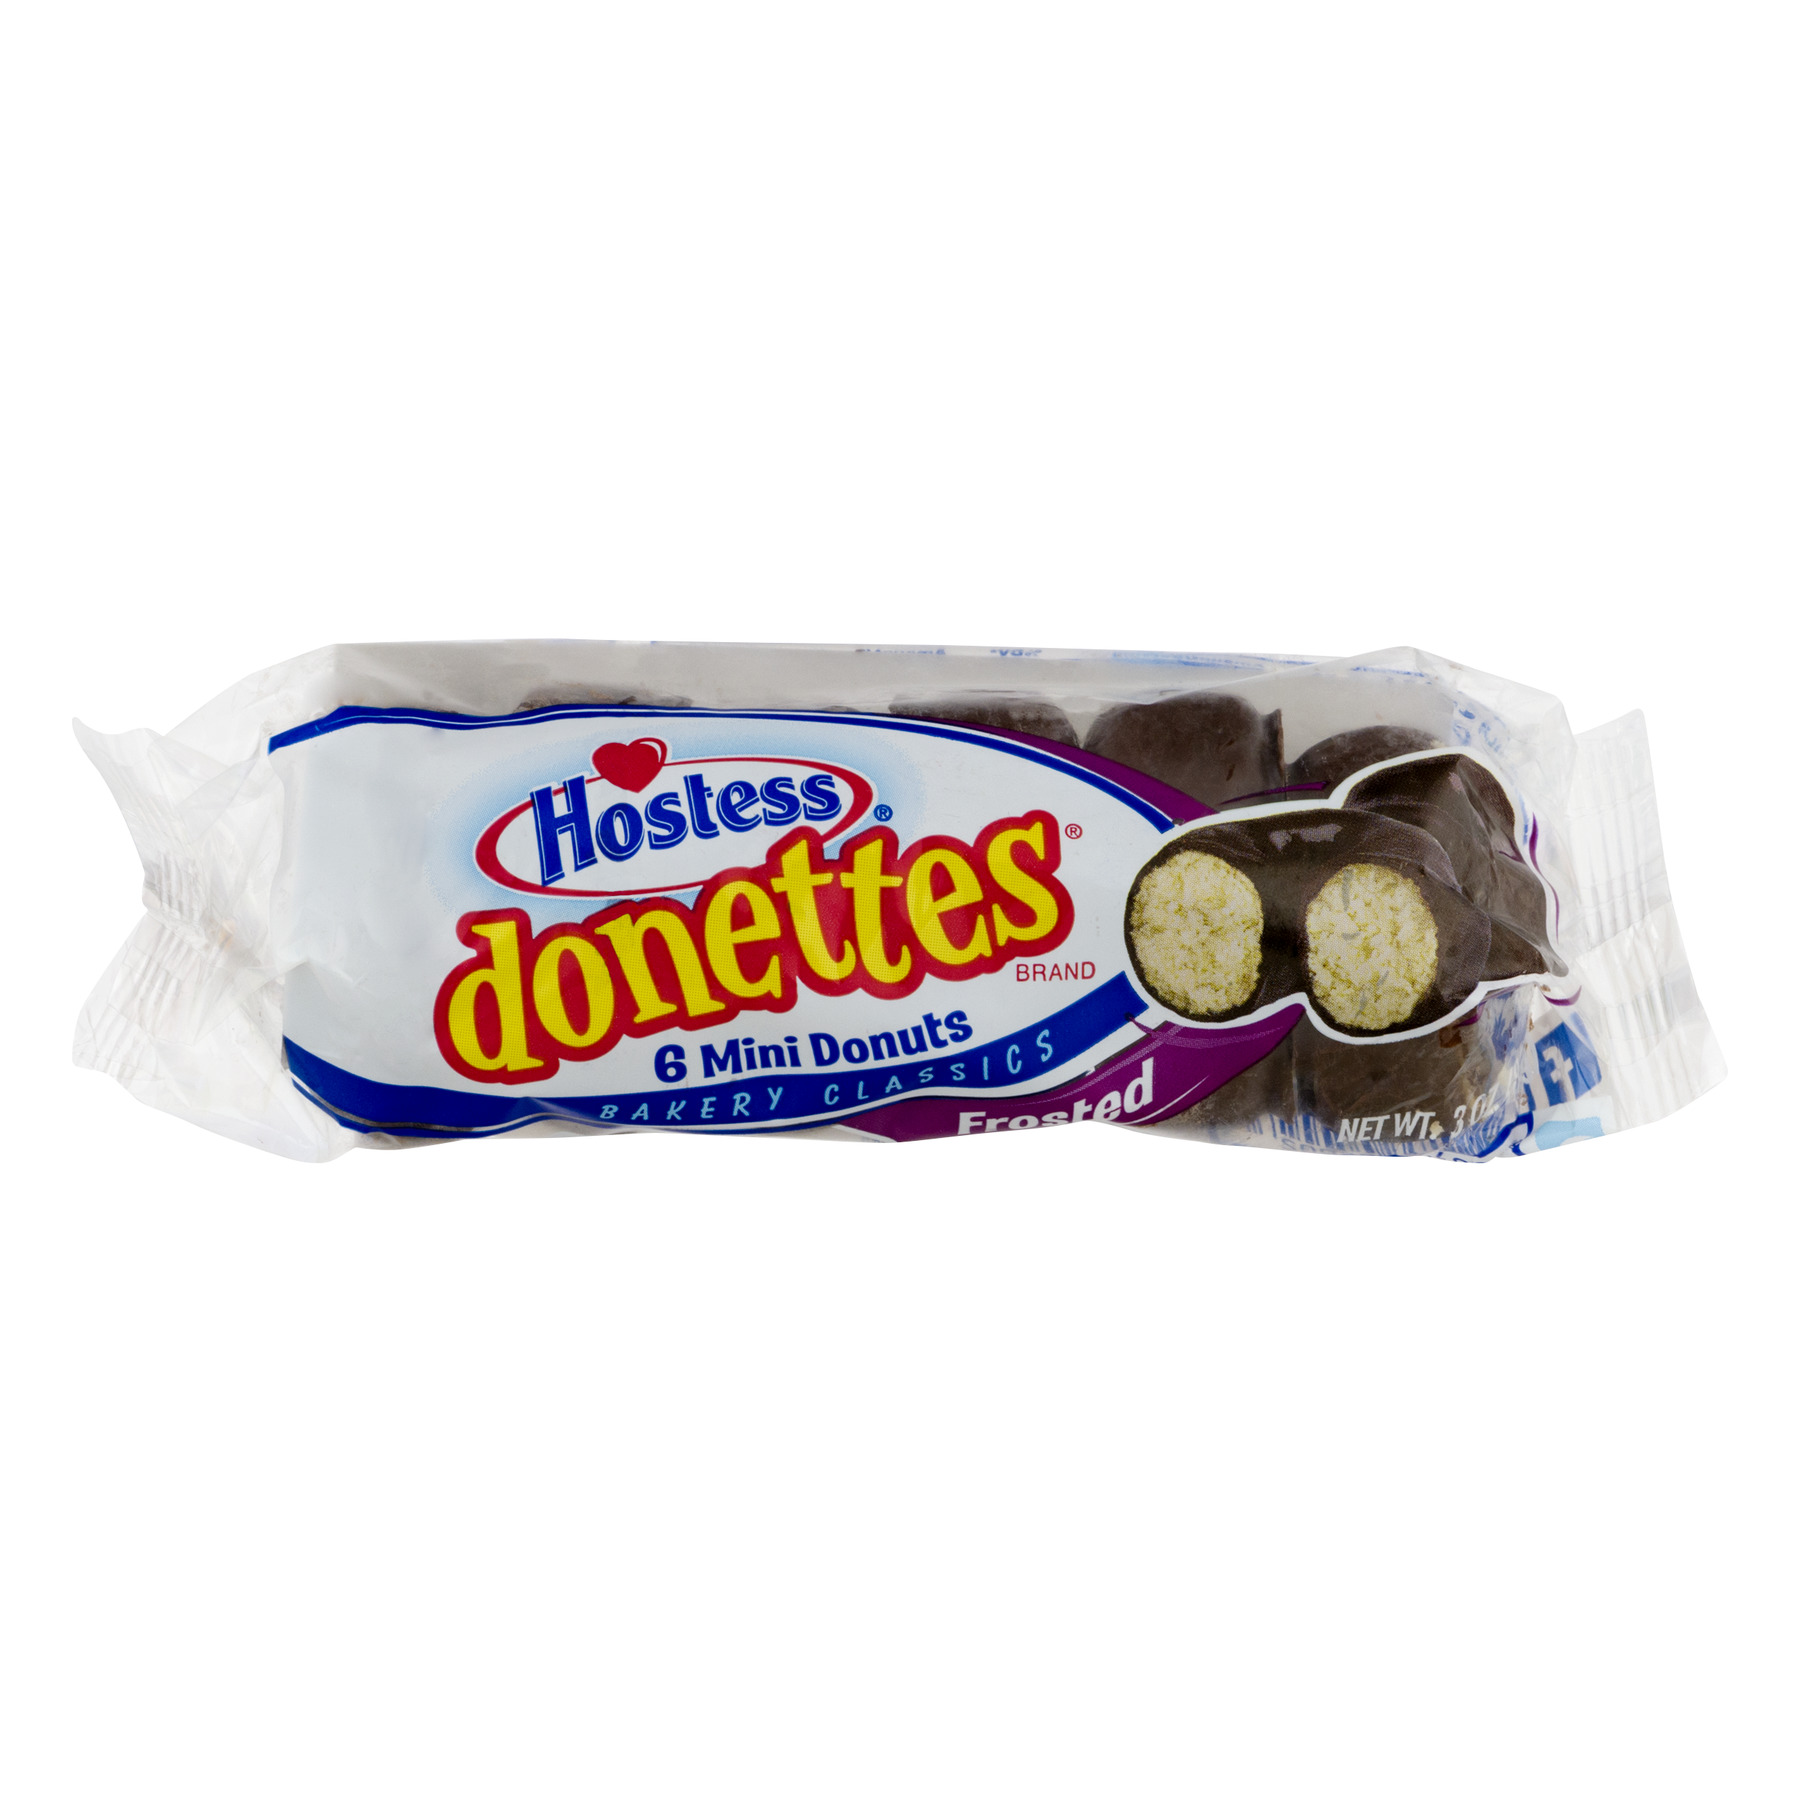 Hostess® Donettes Frosted Mini Donuts, 3.0 oz Package (6 Count)